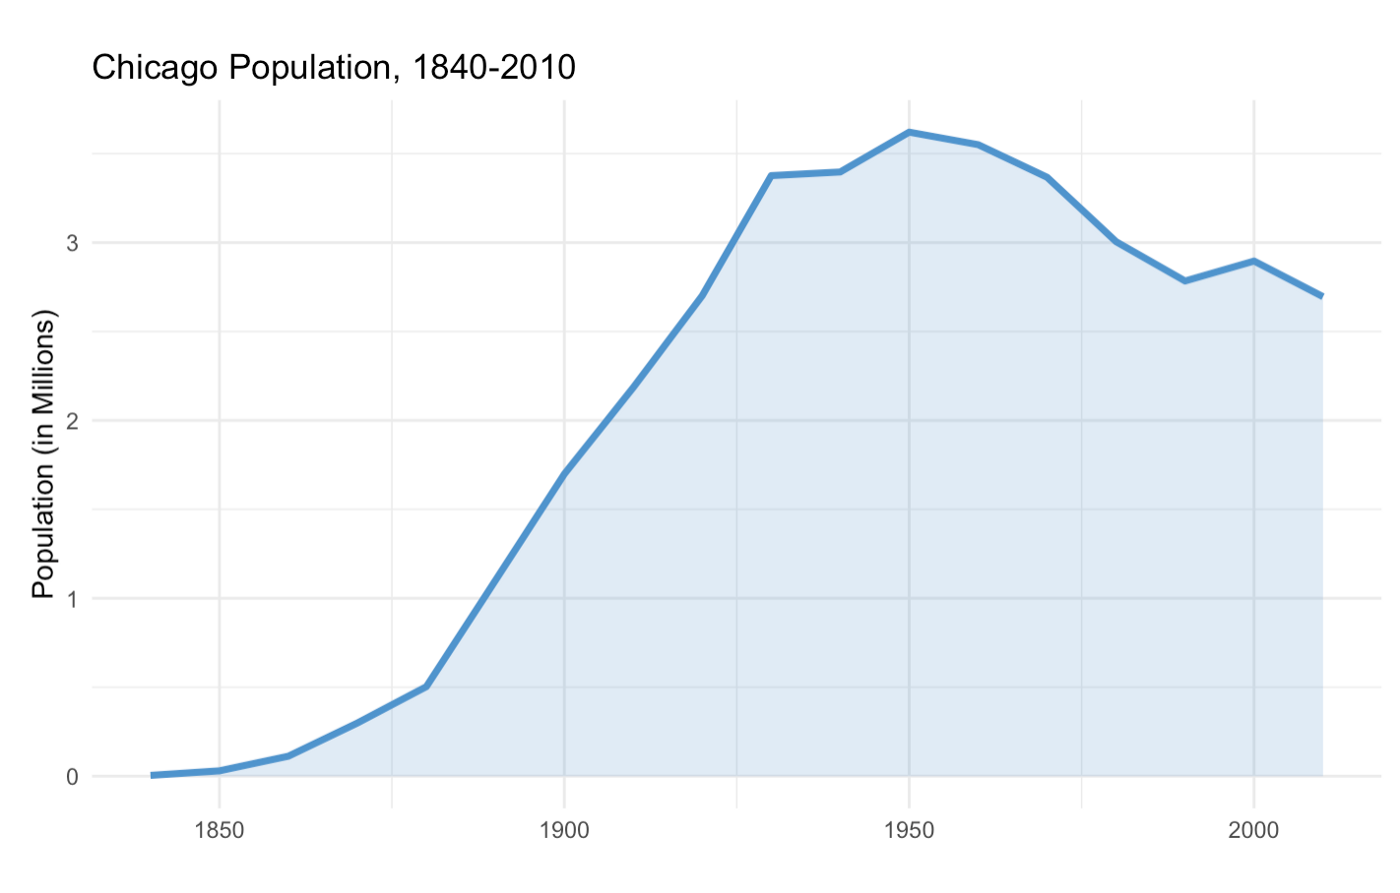 Chicago_Population_1840-2010.png